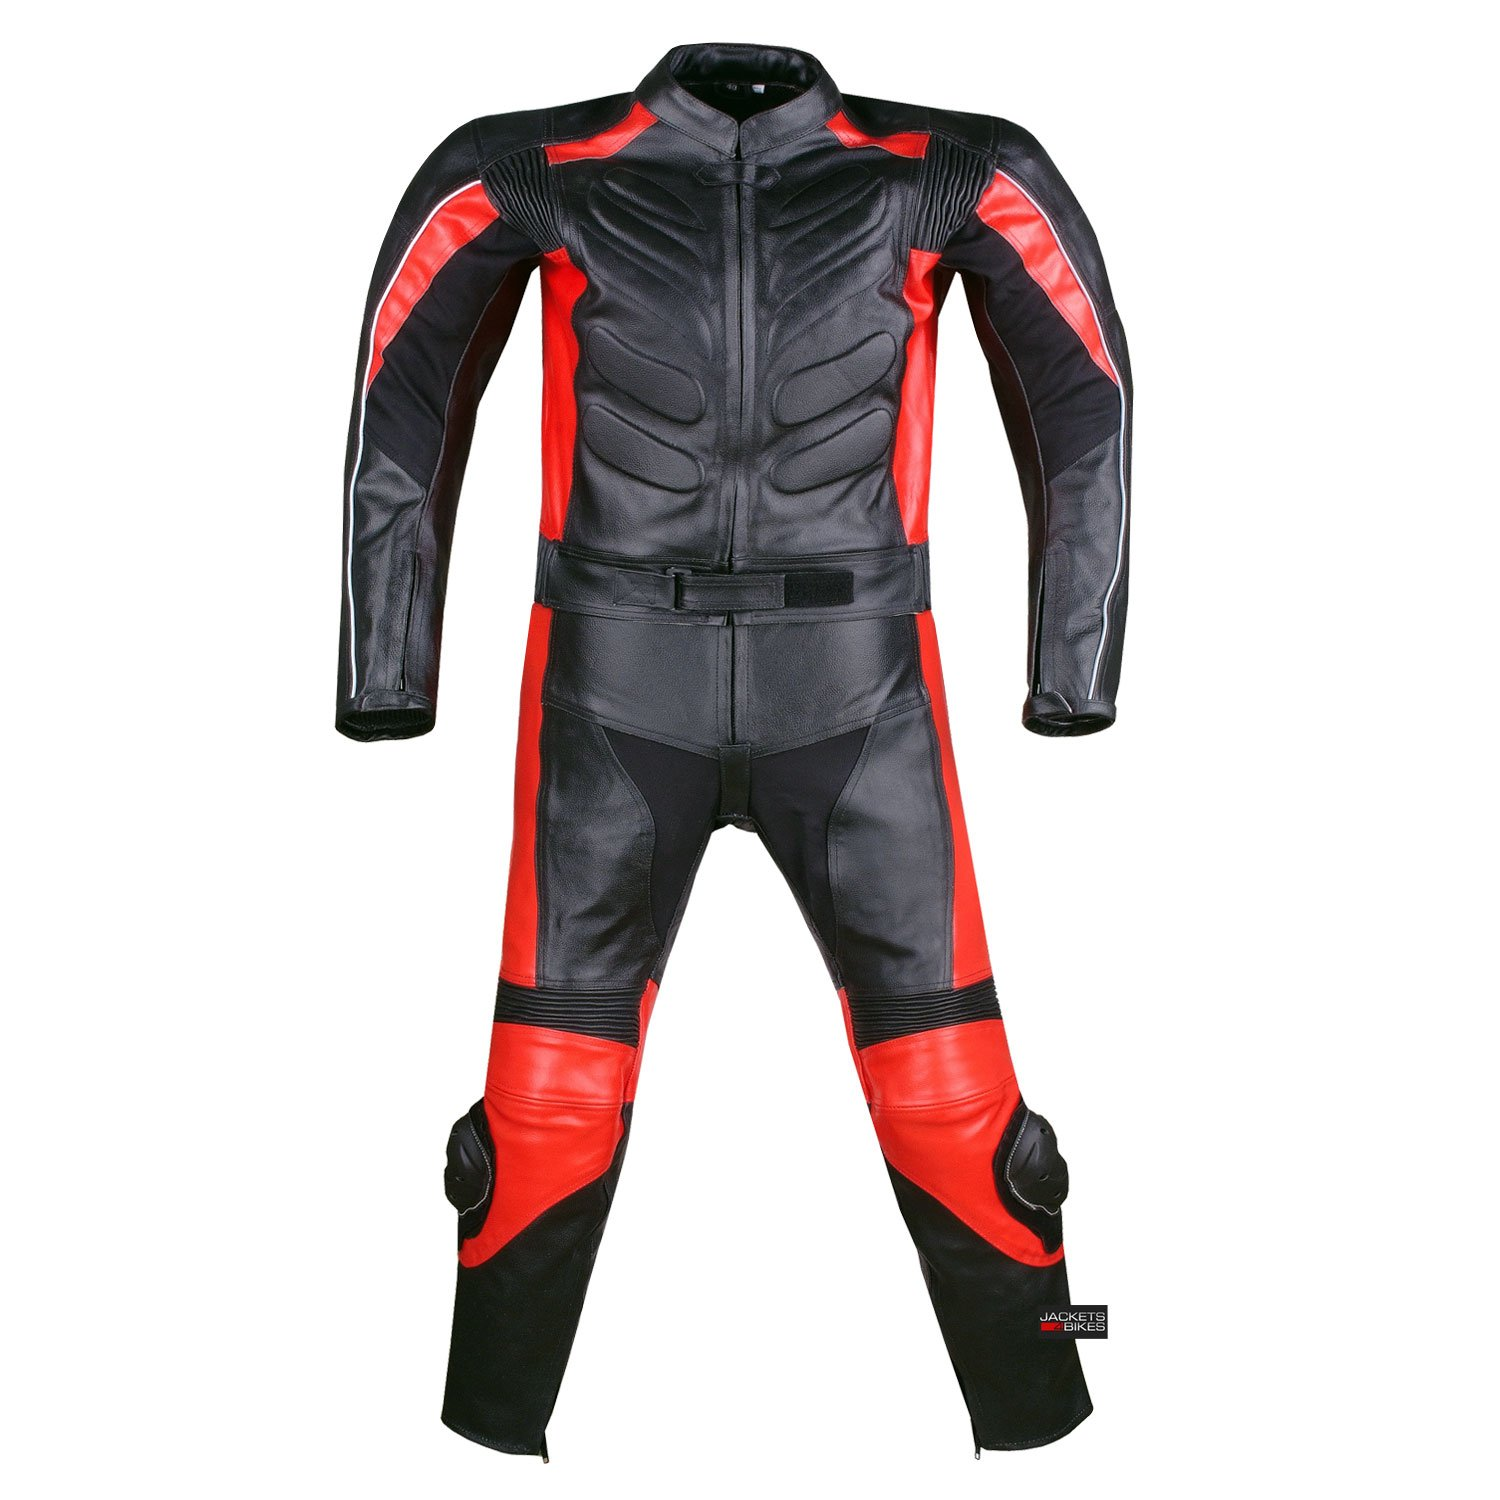 New Men's 2PC Motorcycle Leather Racing Armor Suit 2 PC Two Piece Red US 38 by Jackets 4 Bikes